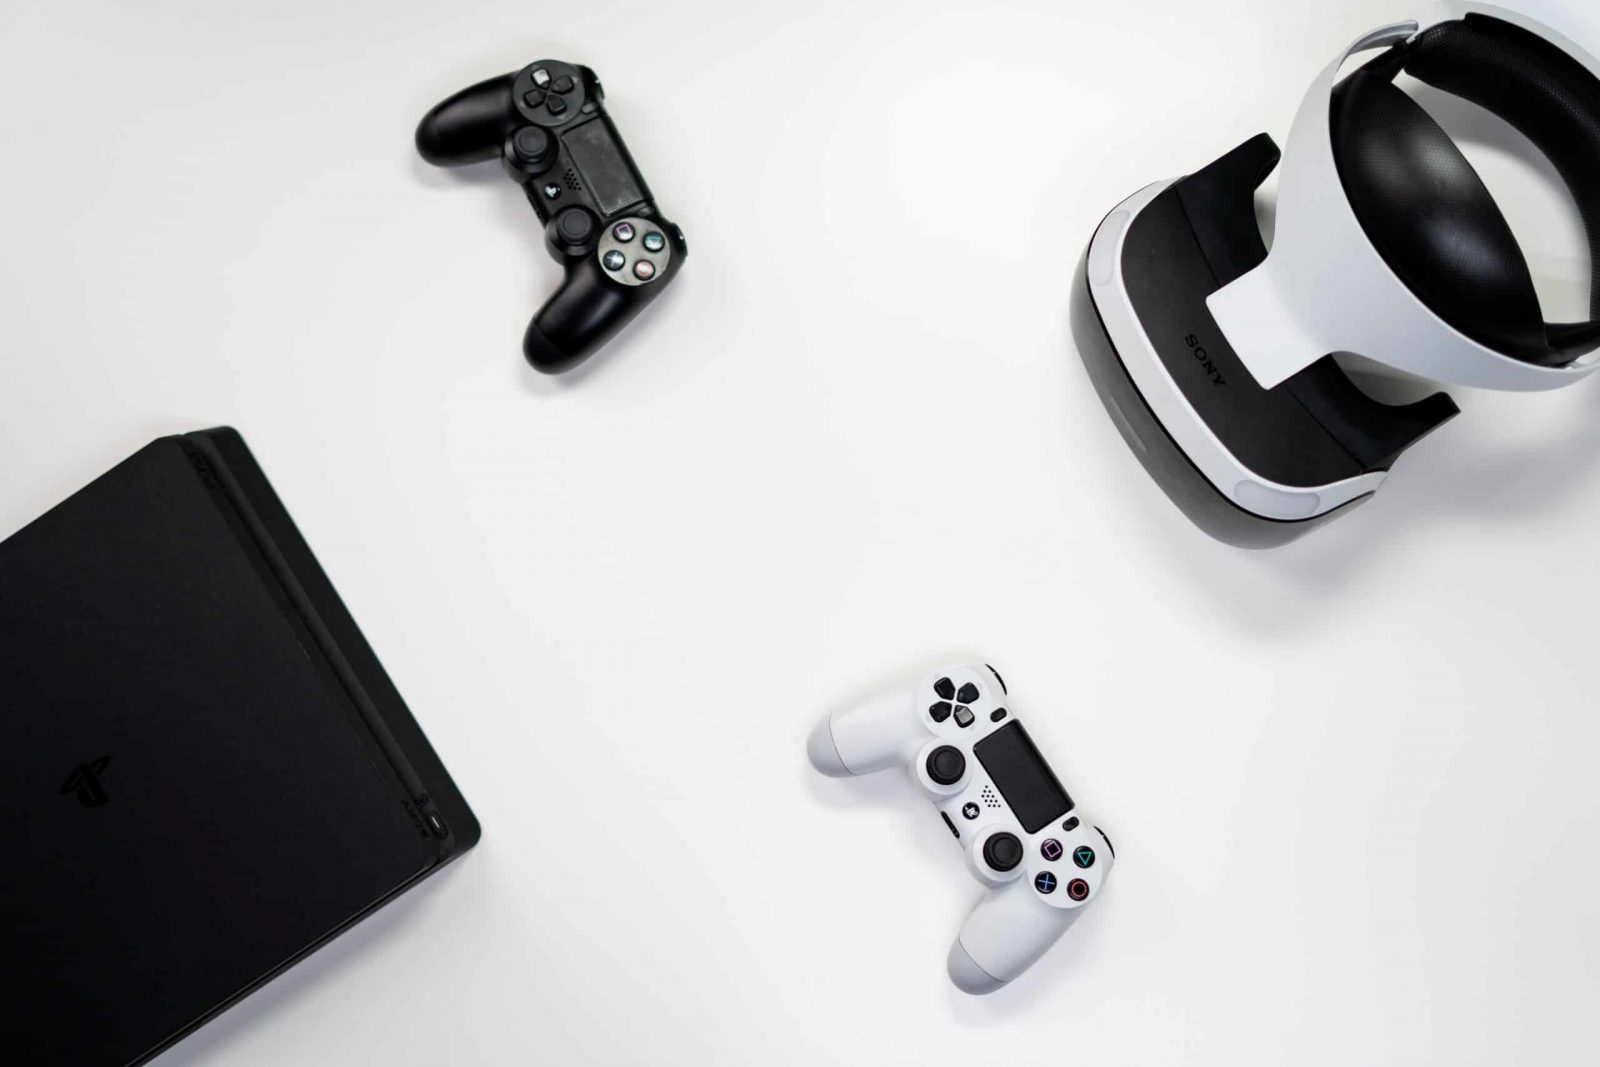 An image showing a Console alongside controllers and a VR headset